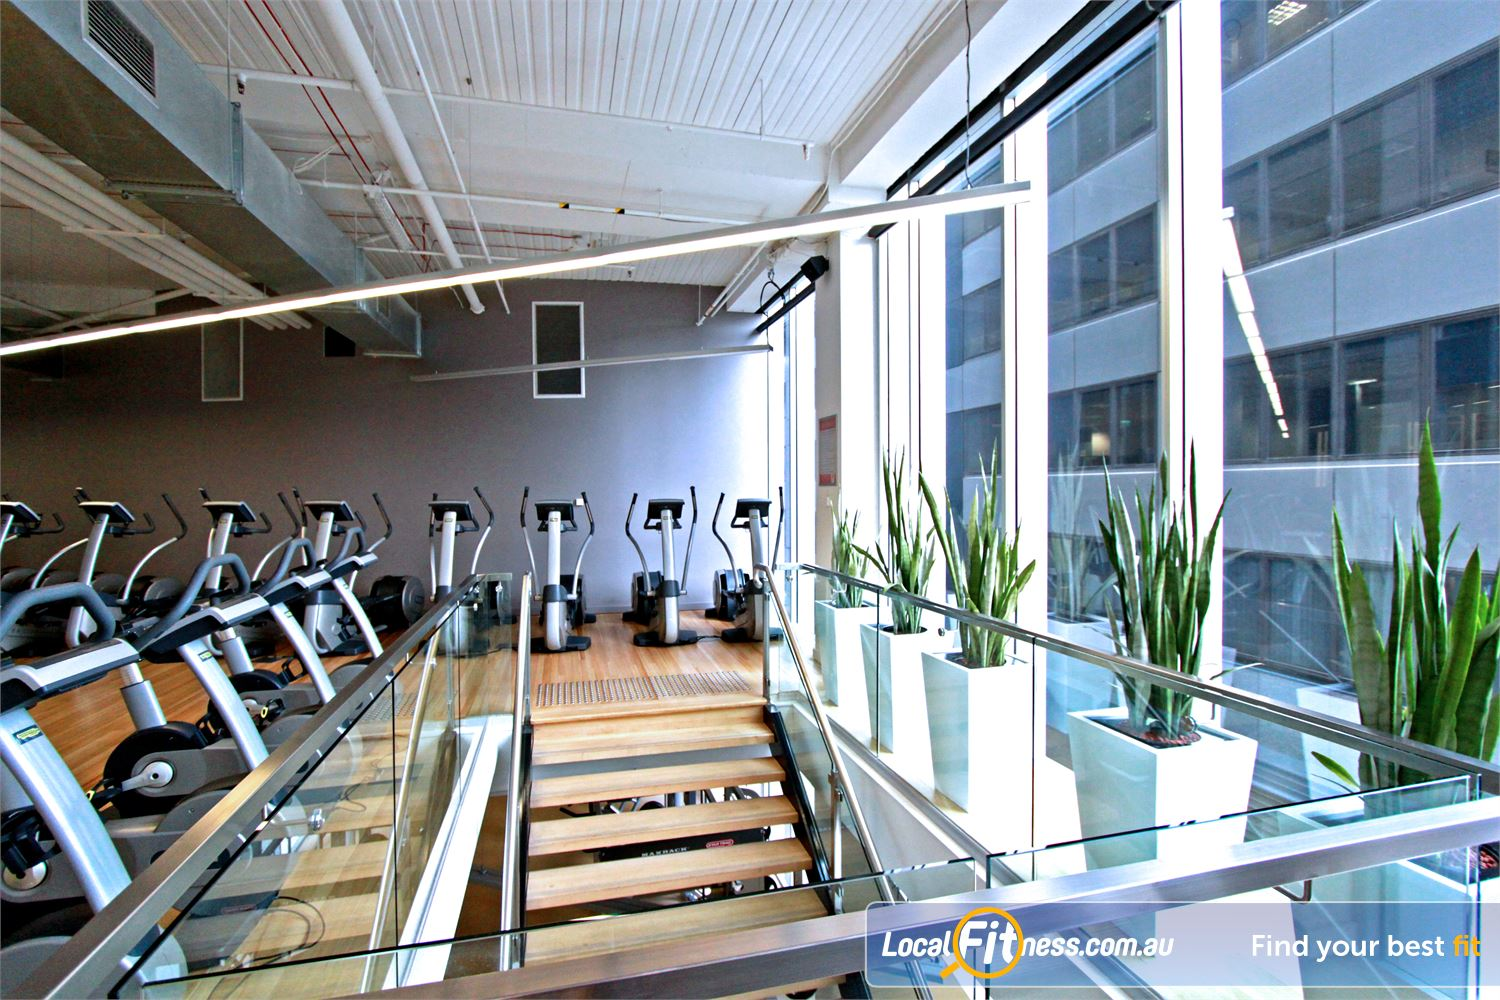 South Pacific Health Clubs Near East Melbourne Our Melbourne gym provides a professional and unmatched service.